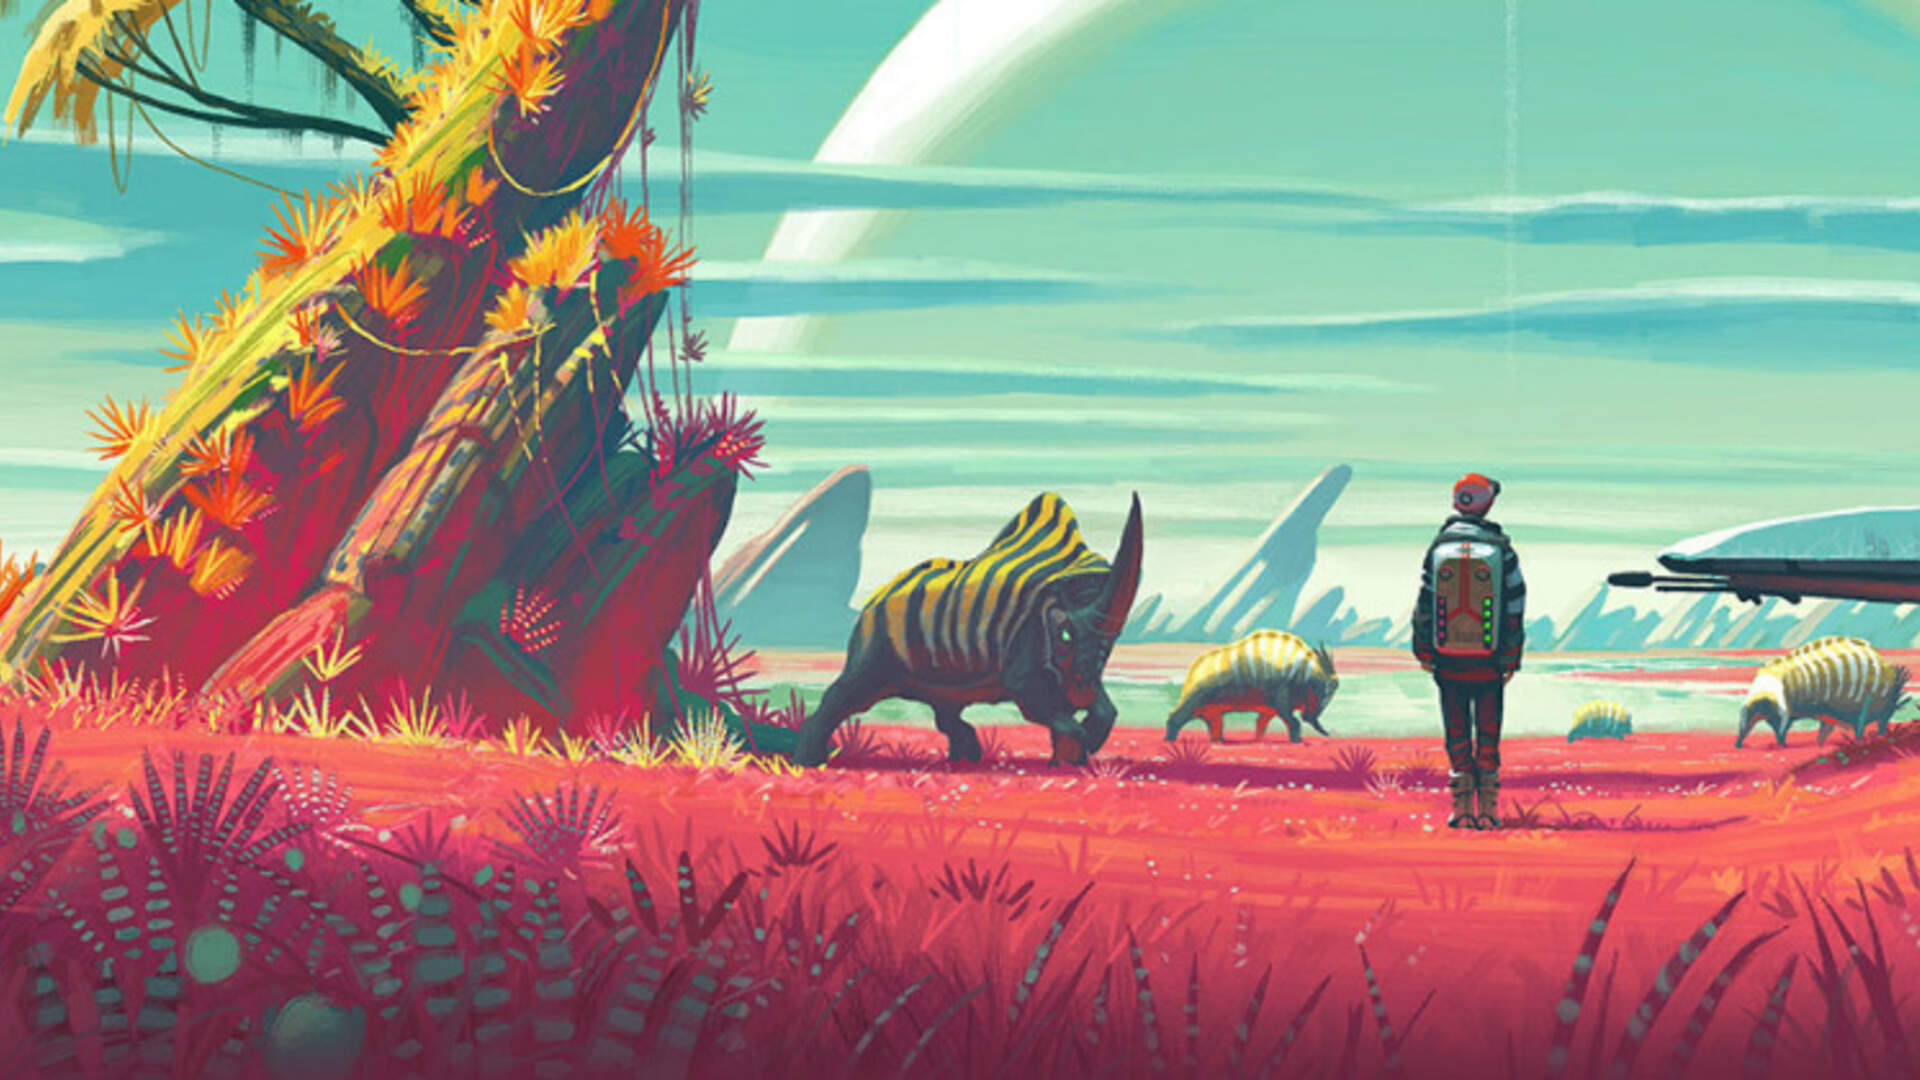 No Man's Sky Being Investigated by UK's Advertising Standards Authority